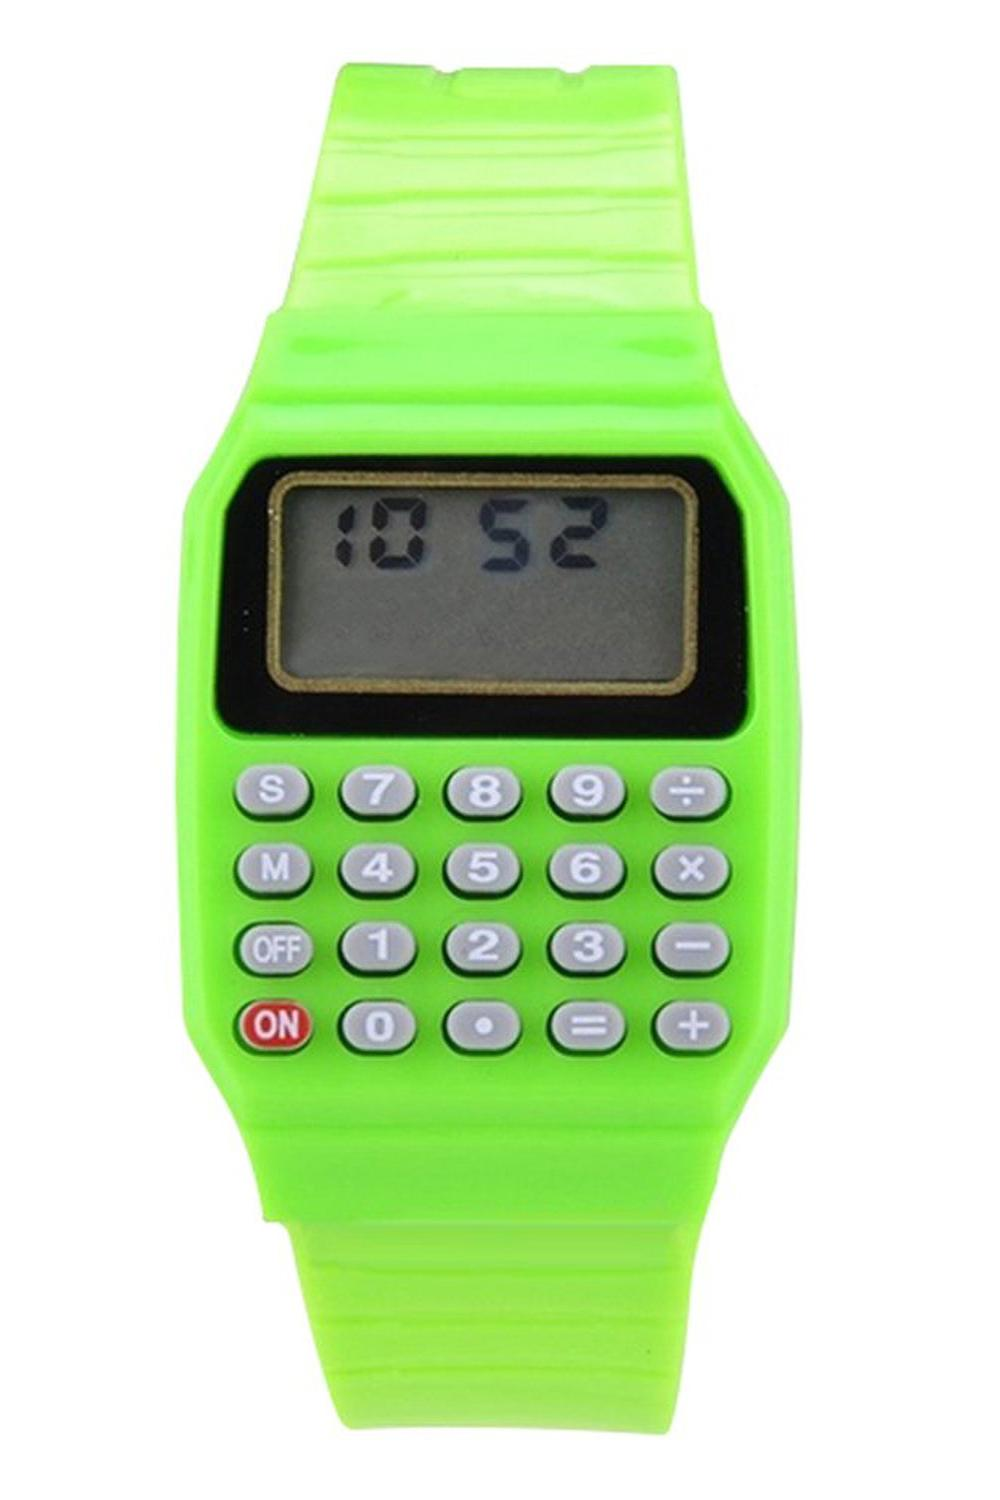 Boys and girls silicone date display electronic watch multifunction calculator watch kids calculator watch green Malaysia